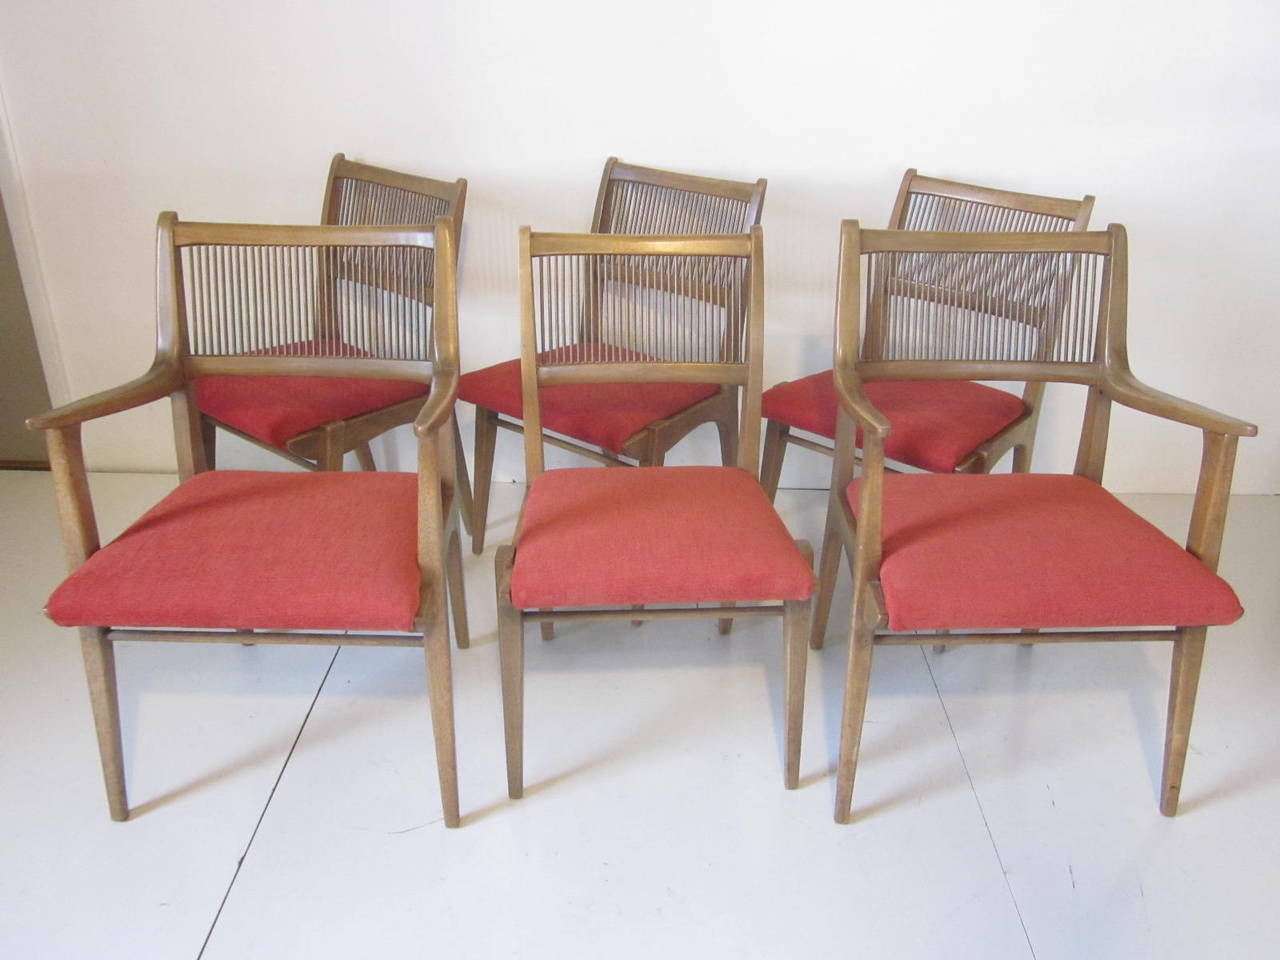 Superieur A Set Of Six Dining Chairs, Two Captains Chairs And Four Side Chairs With  Upholstered